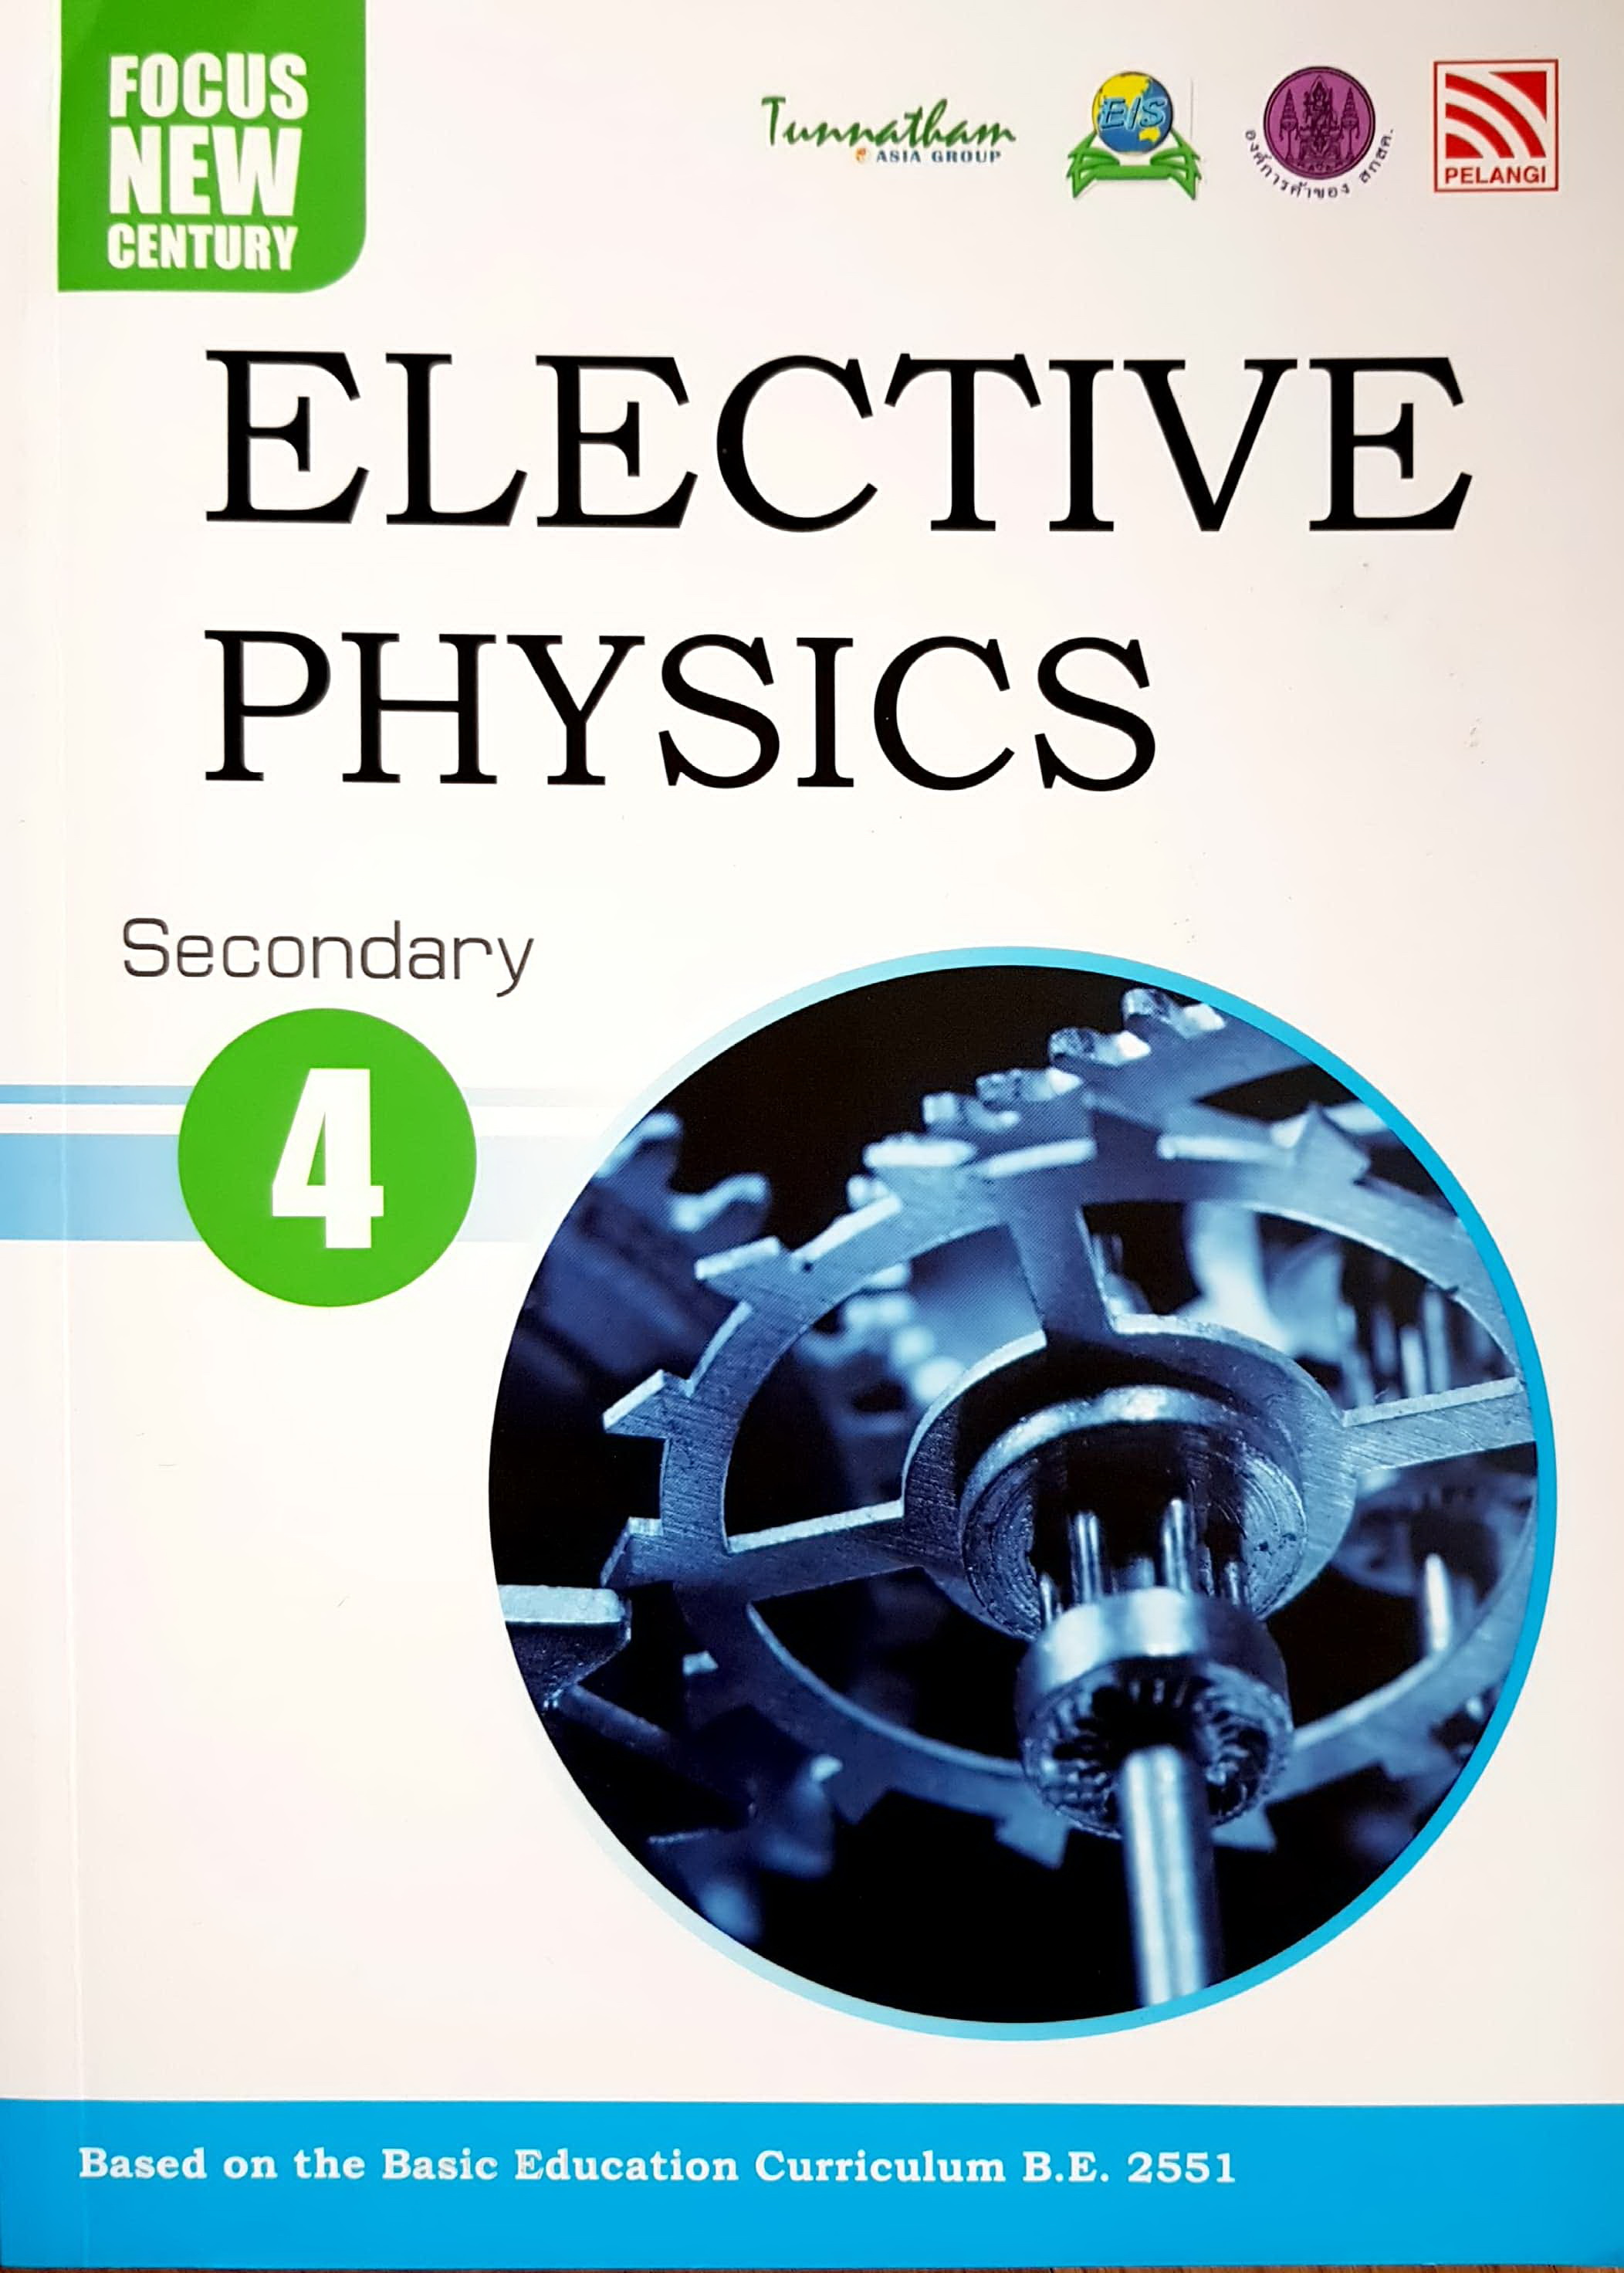 New Century Elective Physics Secondary 4